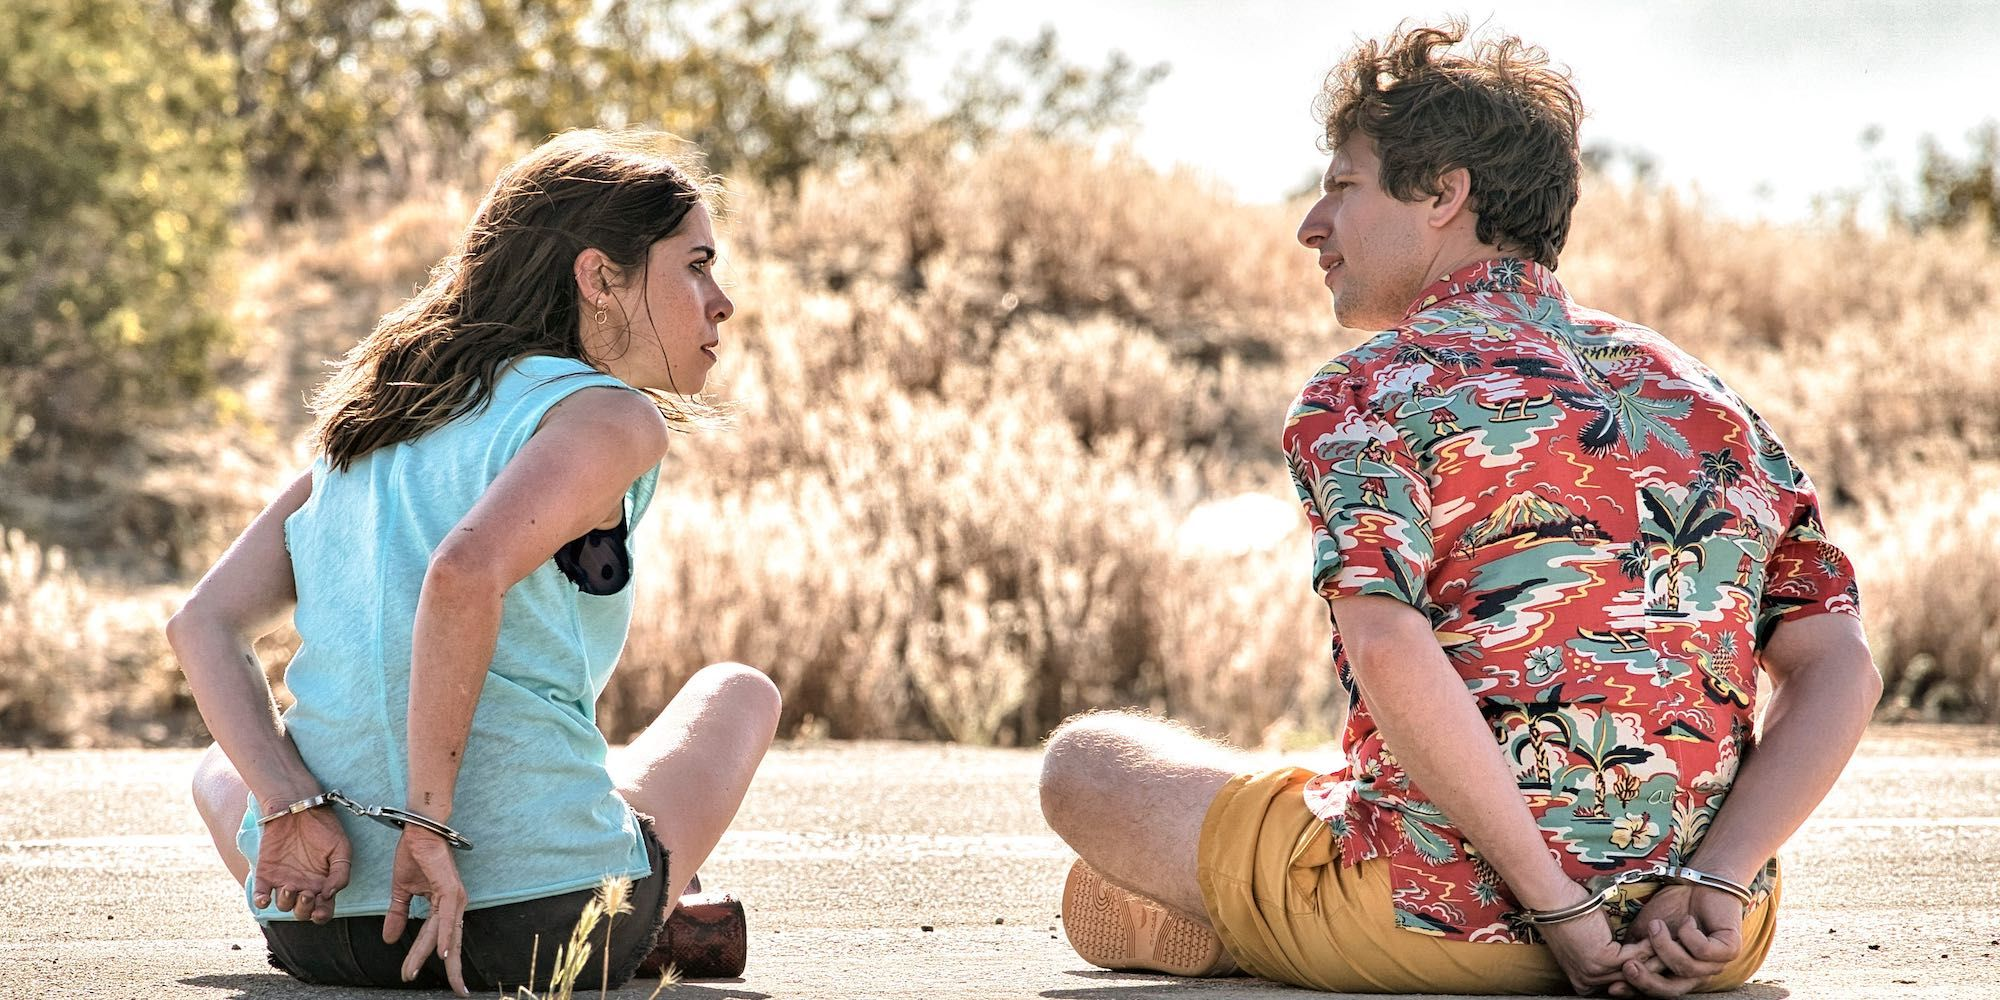 Palm Springs (2020). Sarah (left), a woman with wavy brown hair wearing shorts and a blue tank top sits cross legged on the road beside Nyles (right), who has scruffy brown hair and wears a gharish Aloha shirt and yellow shorts. Both face away from the camera and have their hands cuffed behind they backs.